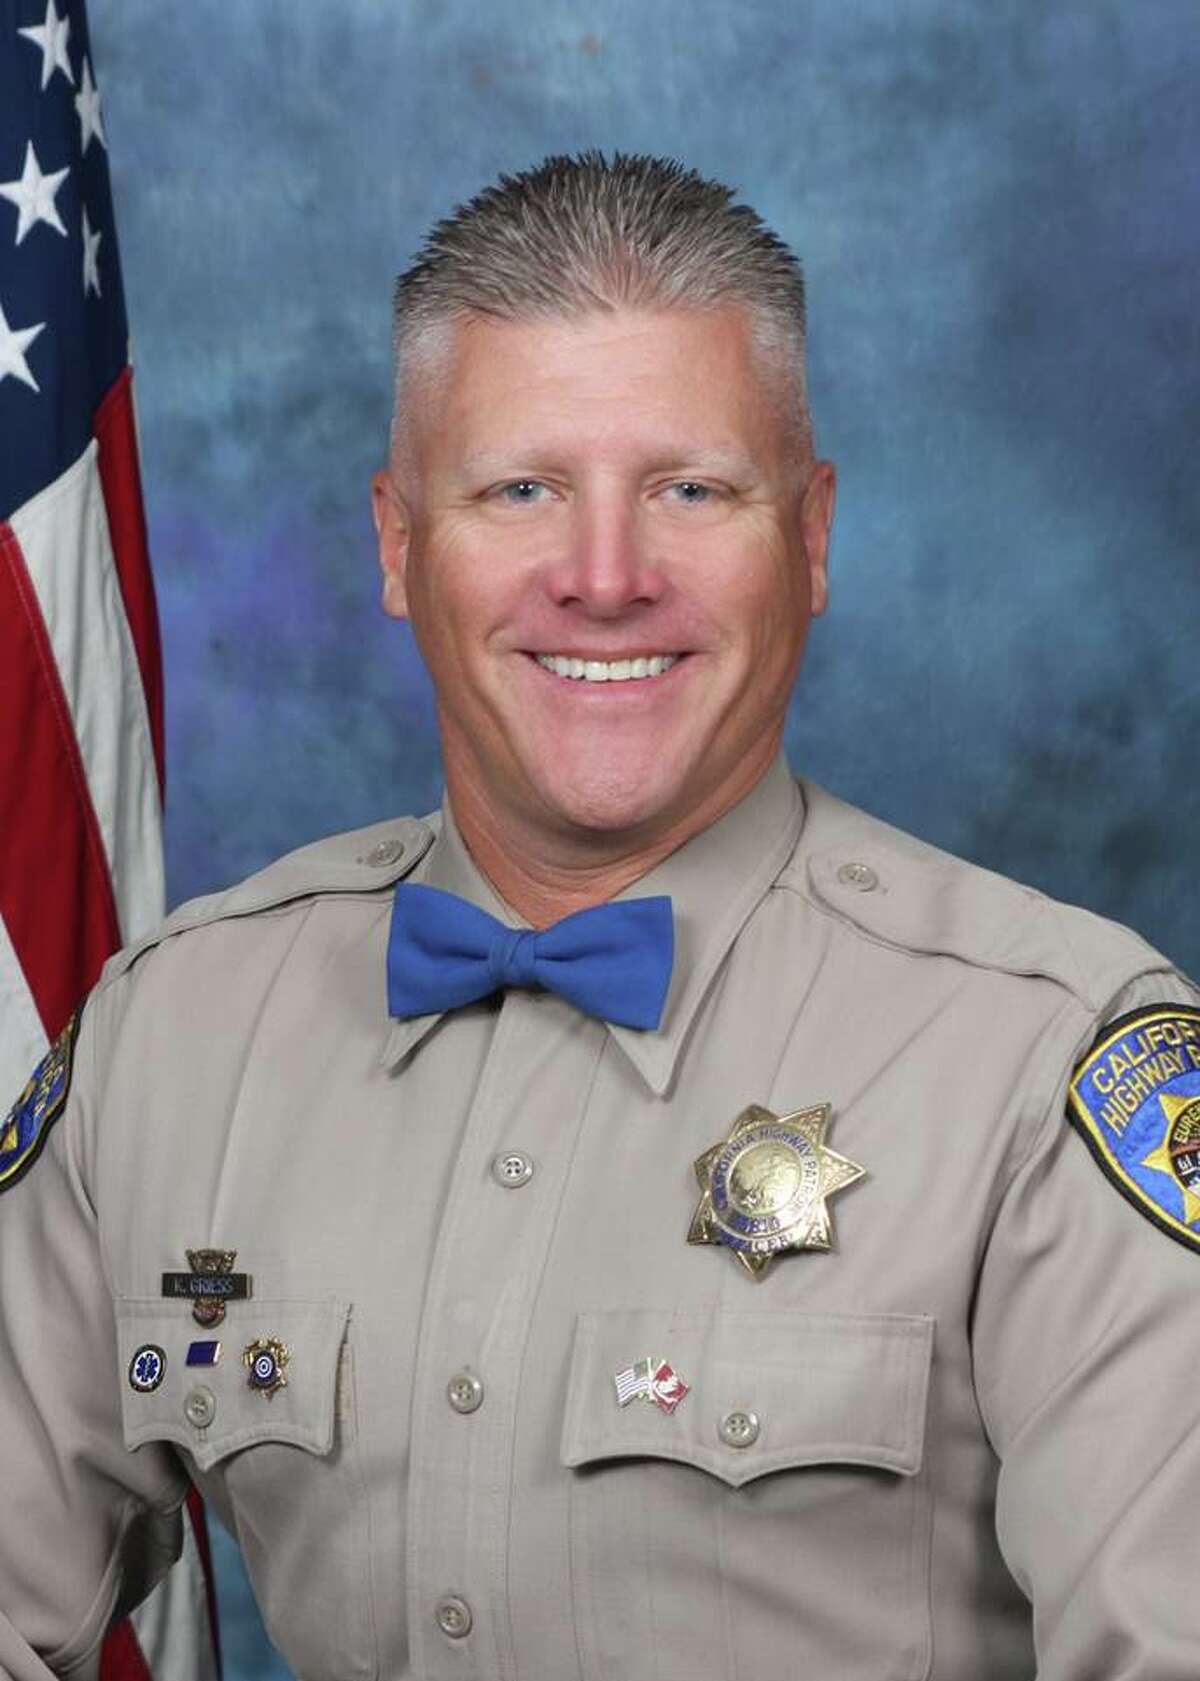 Officer Kirk Griess, of the California Highway Patrol, was killed when he was struck by a pickup truck while conducting a traffic stop on Interstate 80 in Fairfield, Calif. on Friday, August 10, 2018.